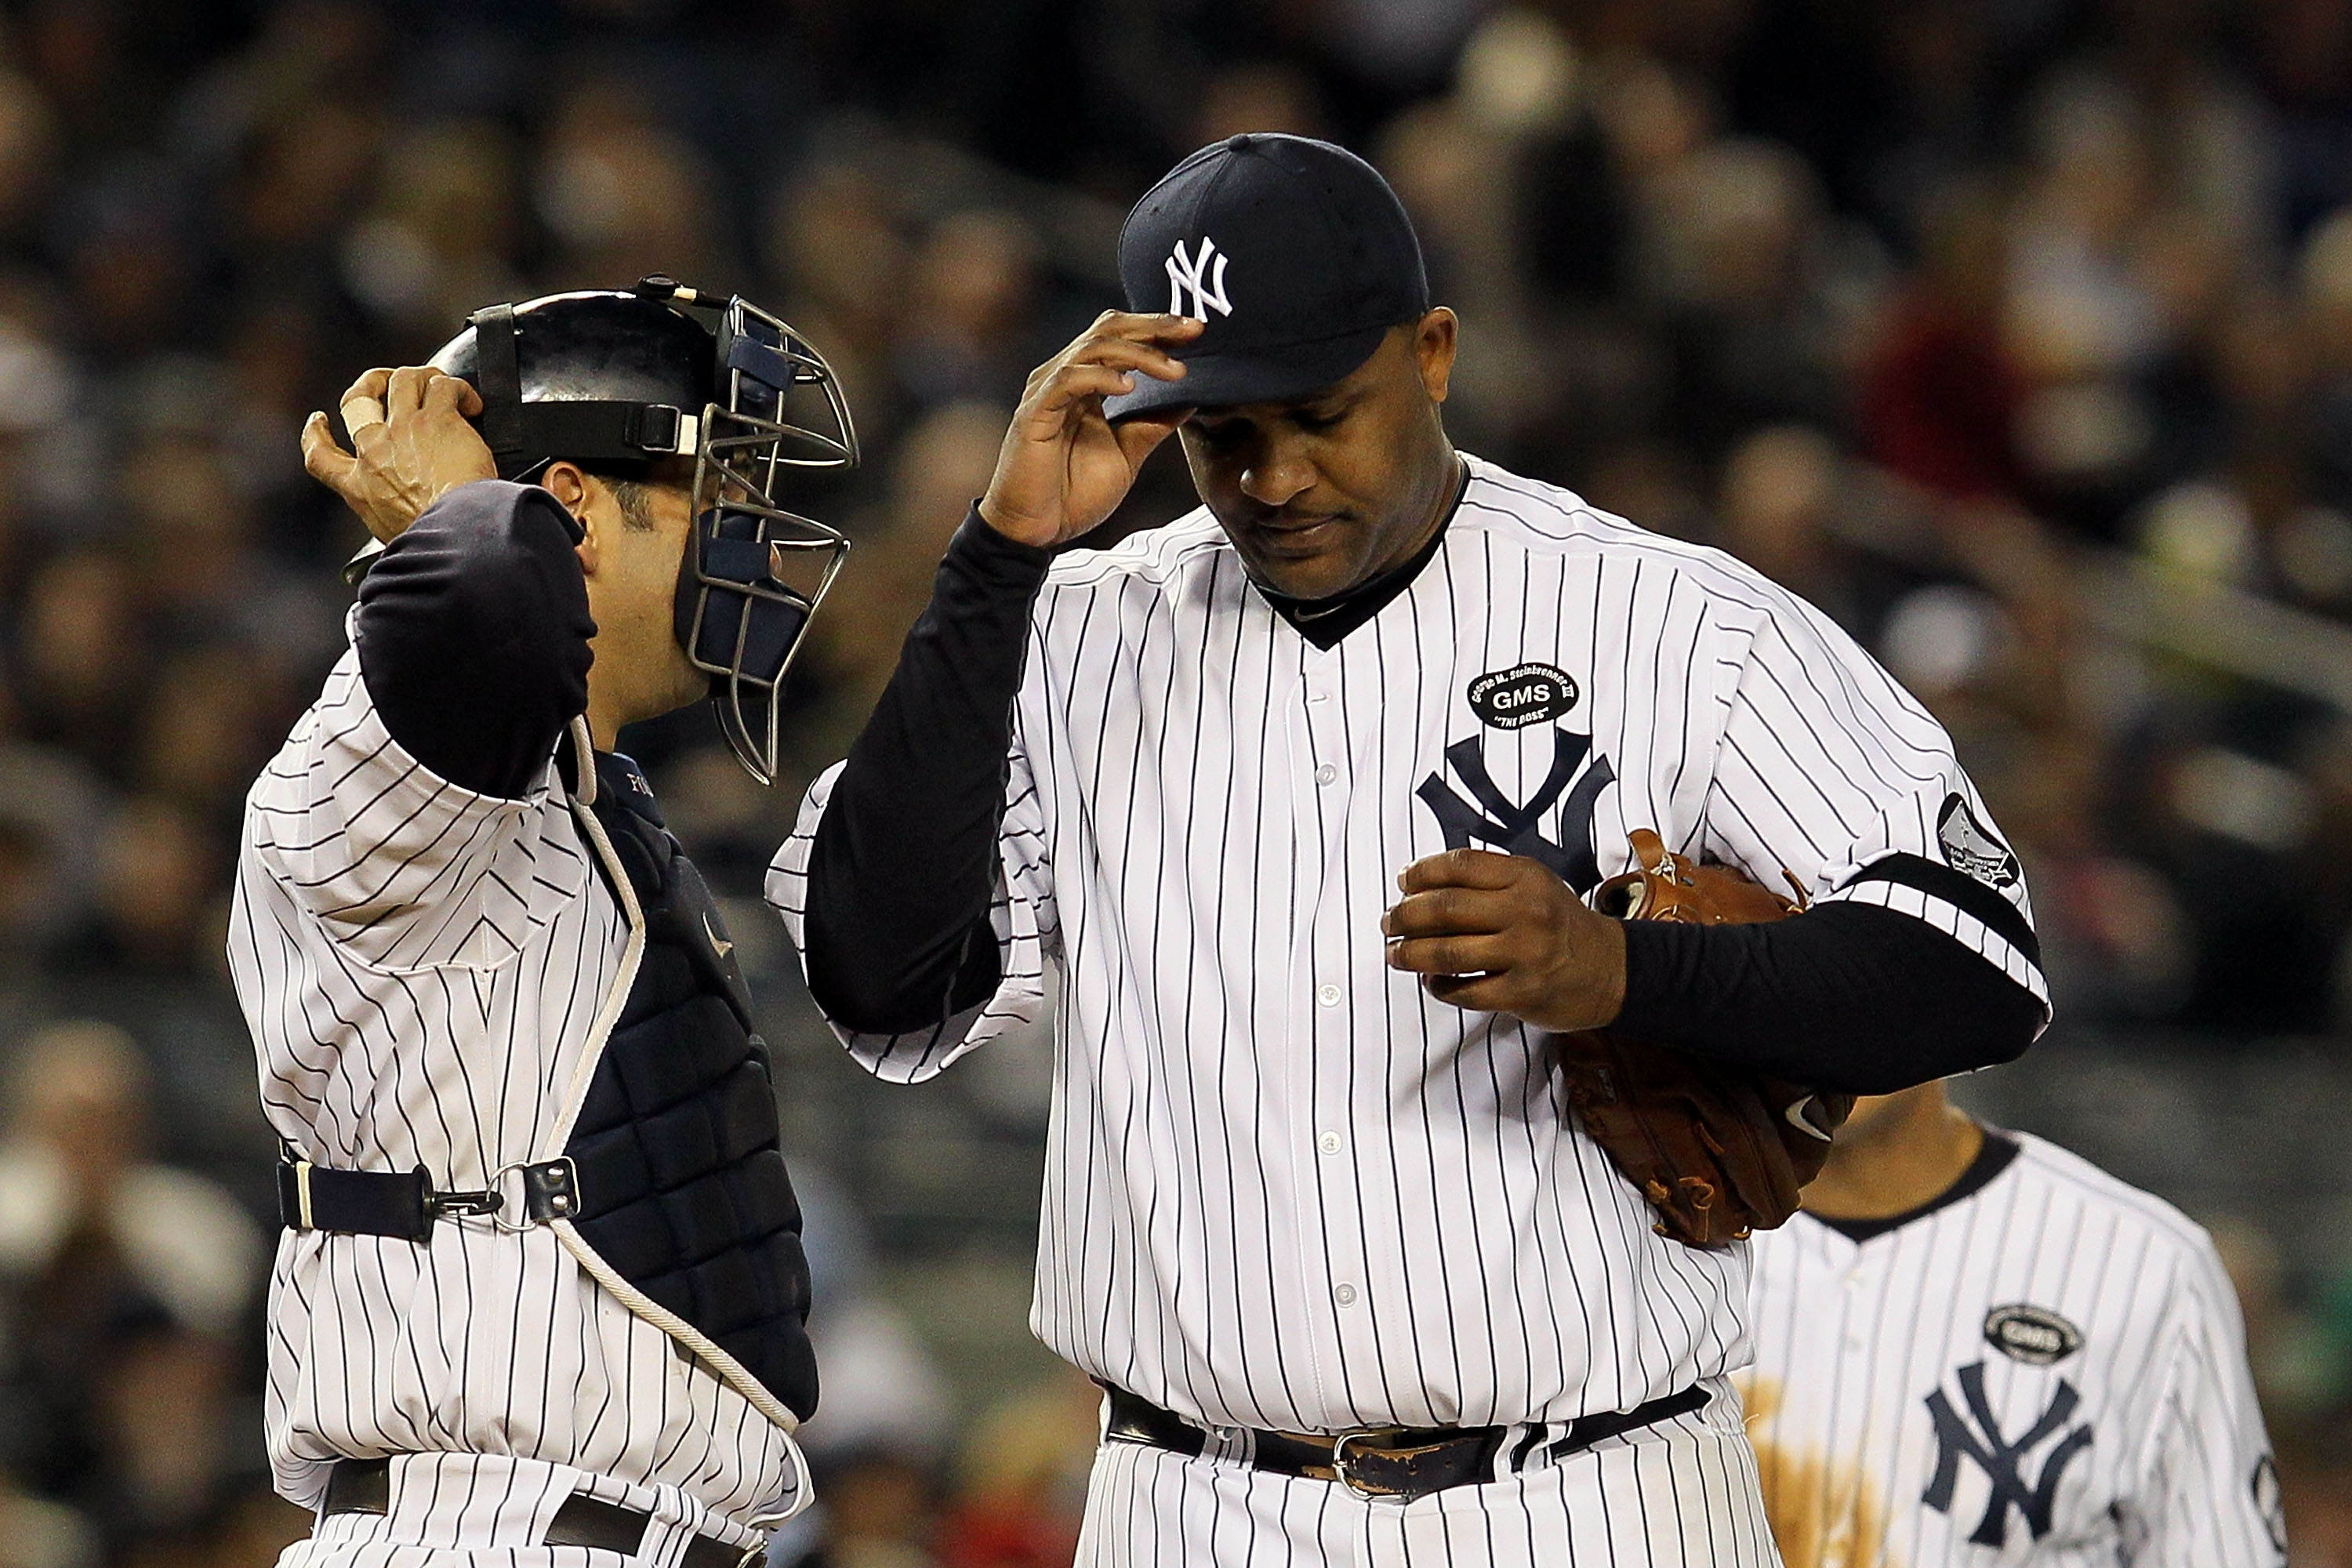 NEW YORK - OCTOBER 20:  Starting pitcher CC Sabathia #52 of the New York Yankees adjusts his cap as he talks with catcher Jorge Posada #20 after Sabathia gave up a single to Jeff Francoeur #21 of the Texas Rangers to load the bases in the top of the sixth